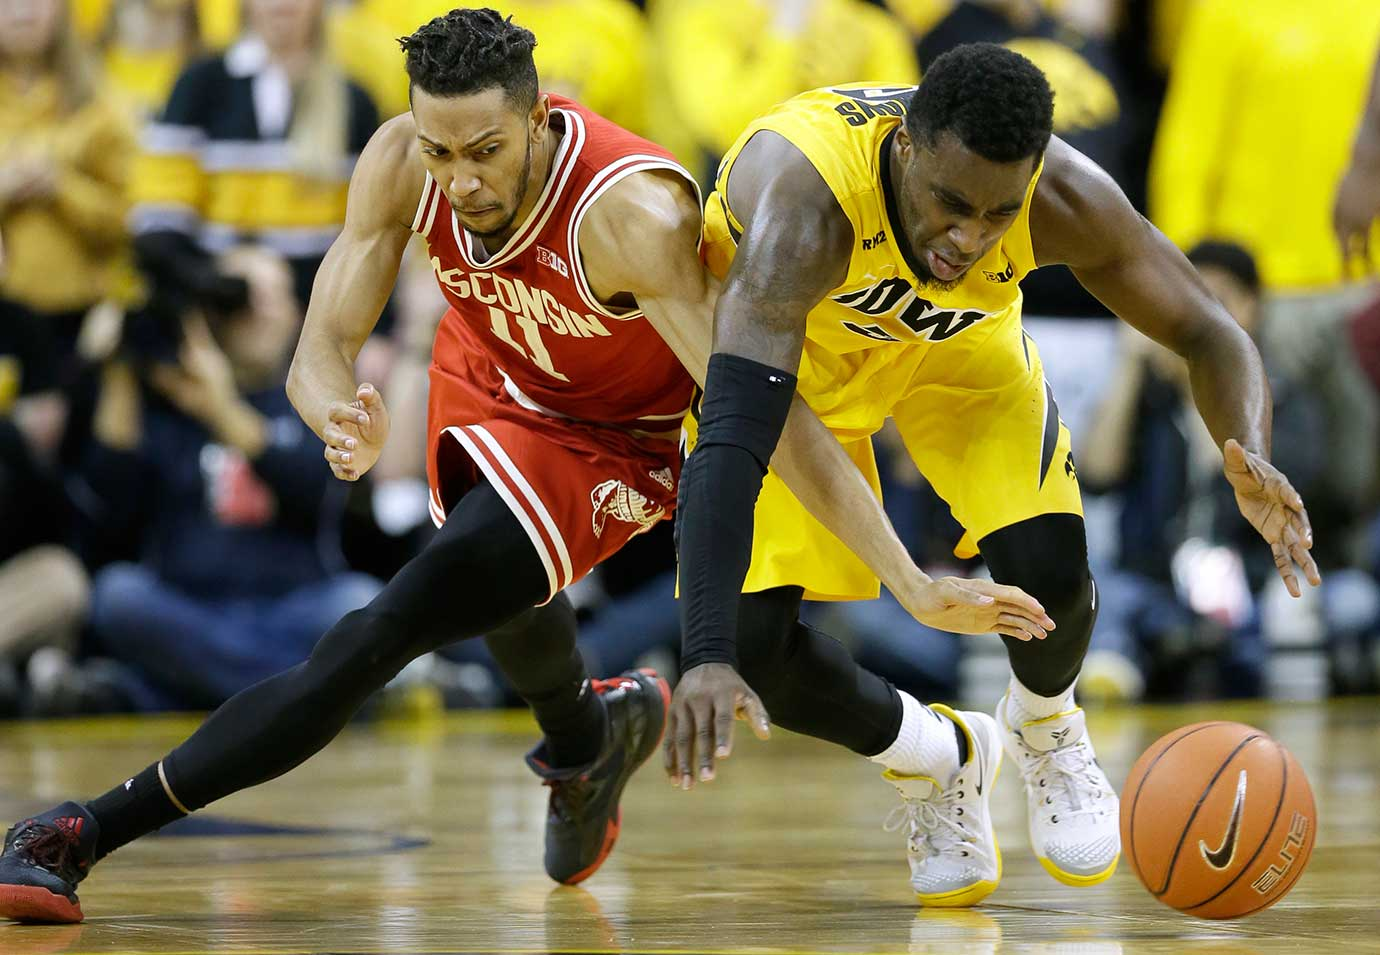 Wisconsin guard Jordan Hill fights for a loose ball with Iowa guard Anthony Clemmons.